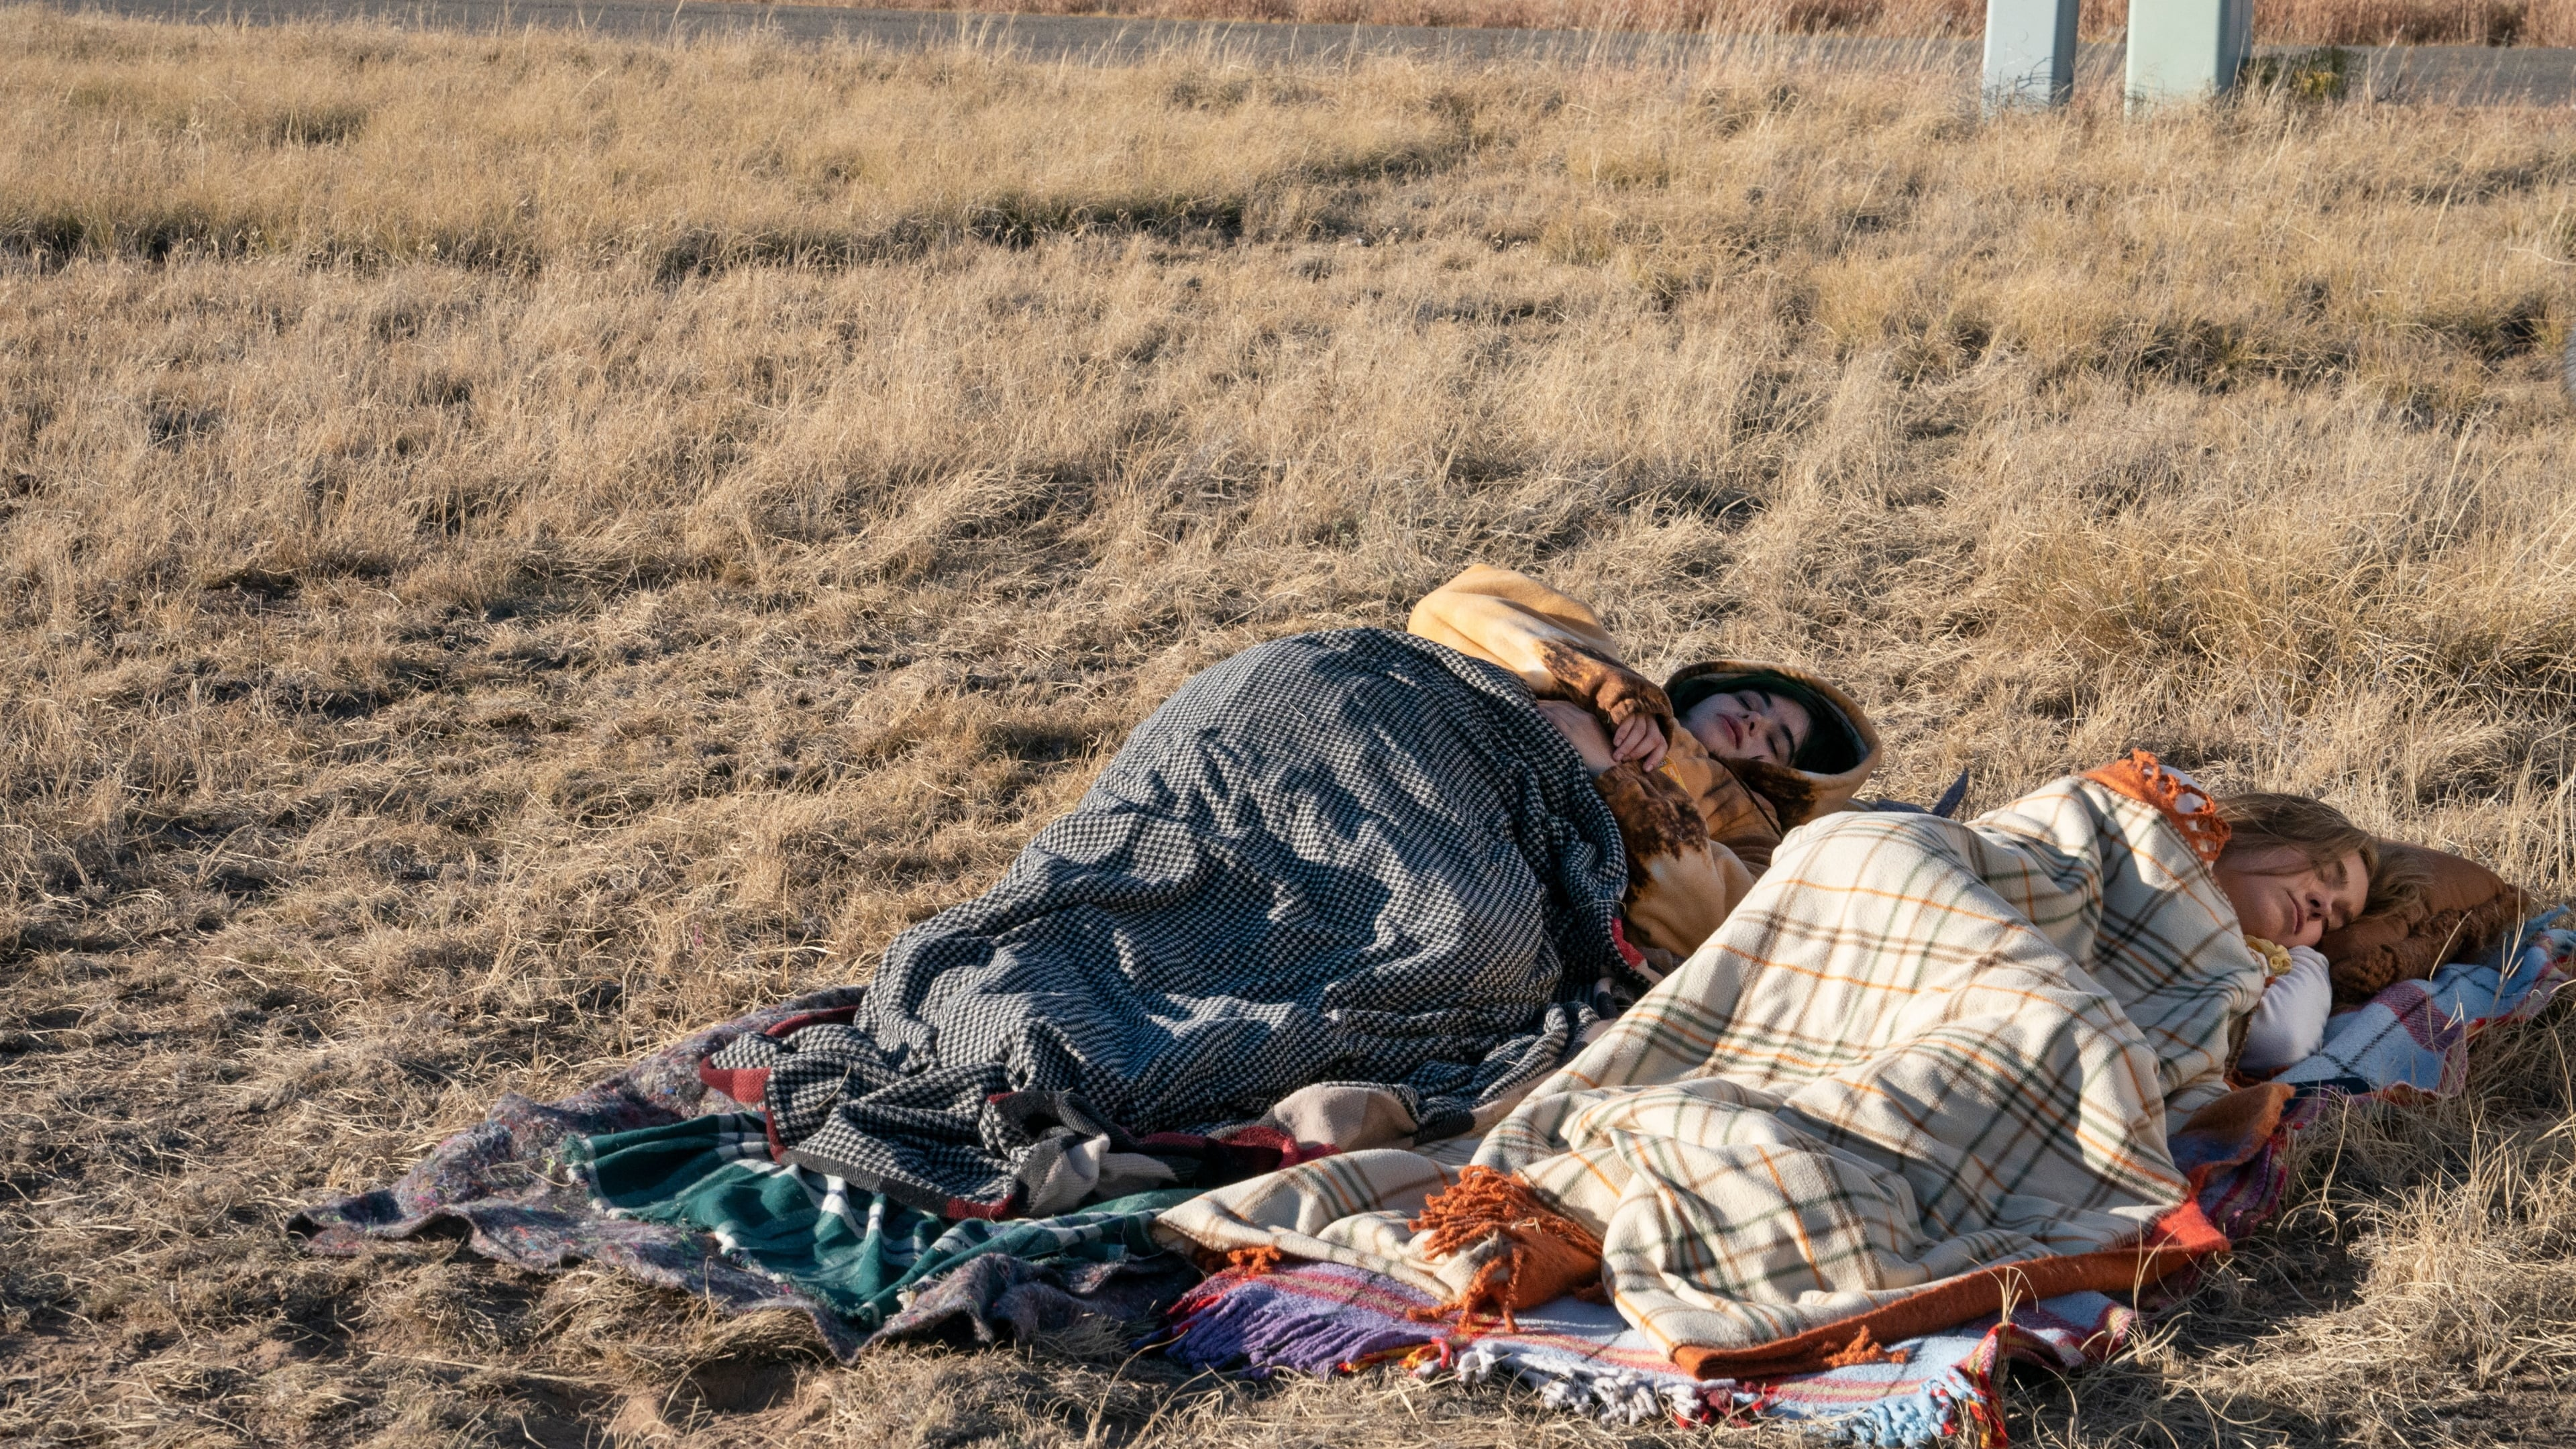 Bailey and Veronica lie side by side on the ground in a field of dry, yellow grass. They are sleeping wrapped in blankets and jumpers to protect them from the cold.